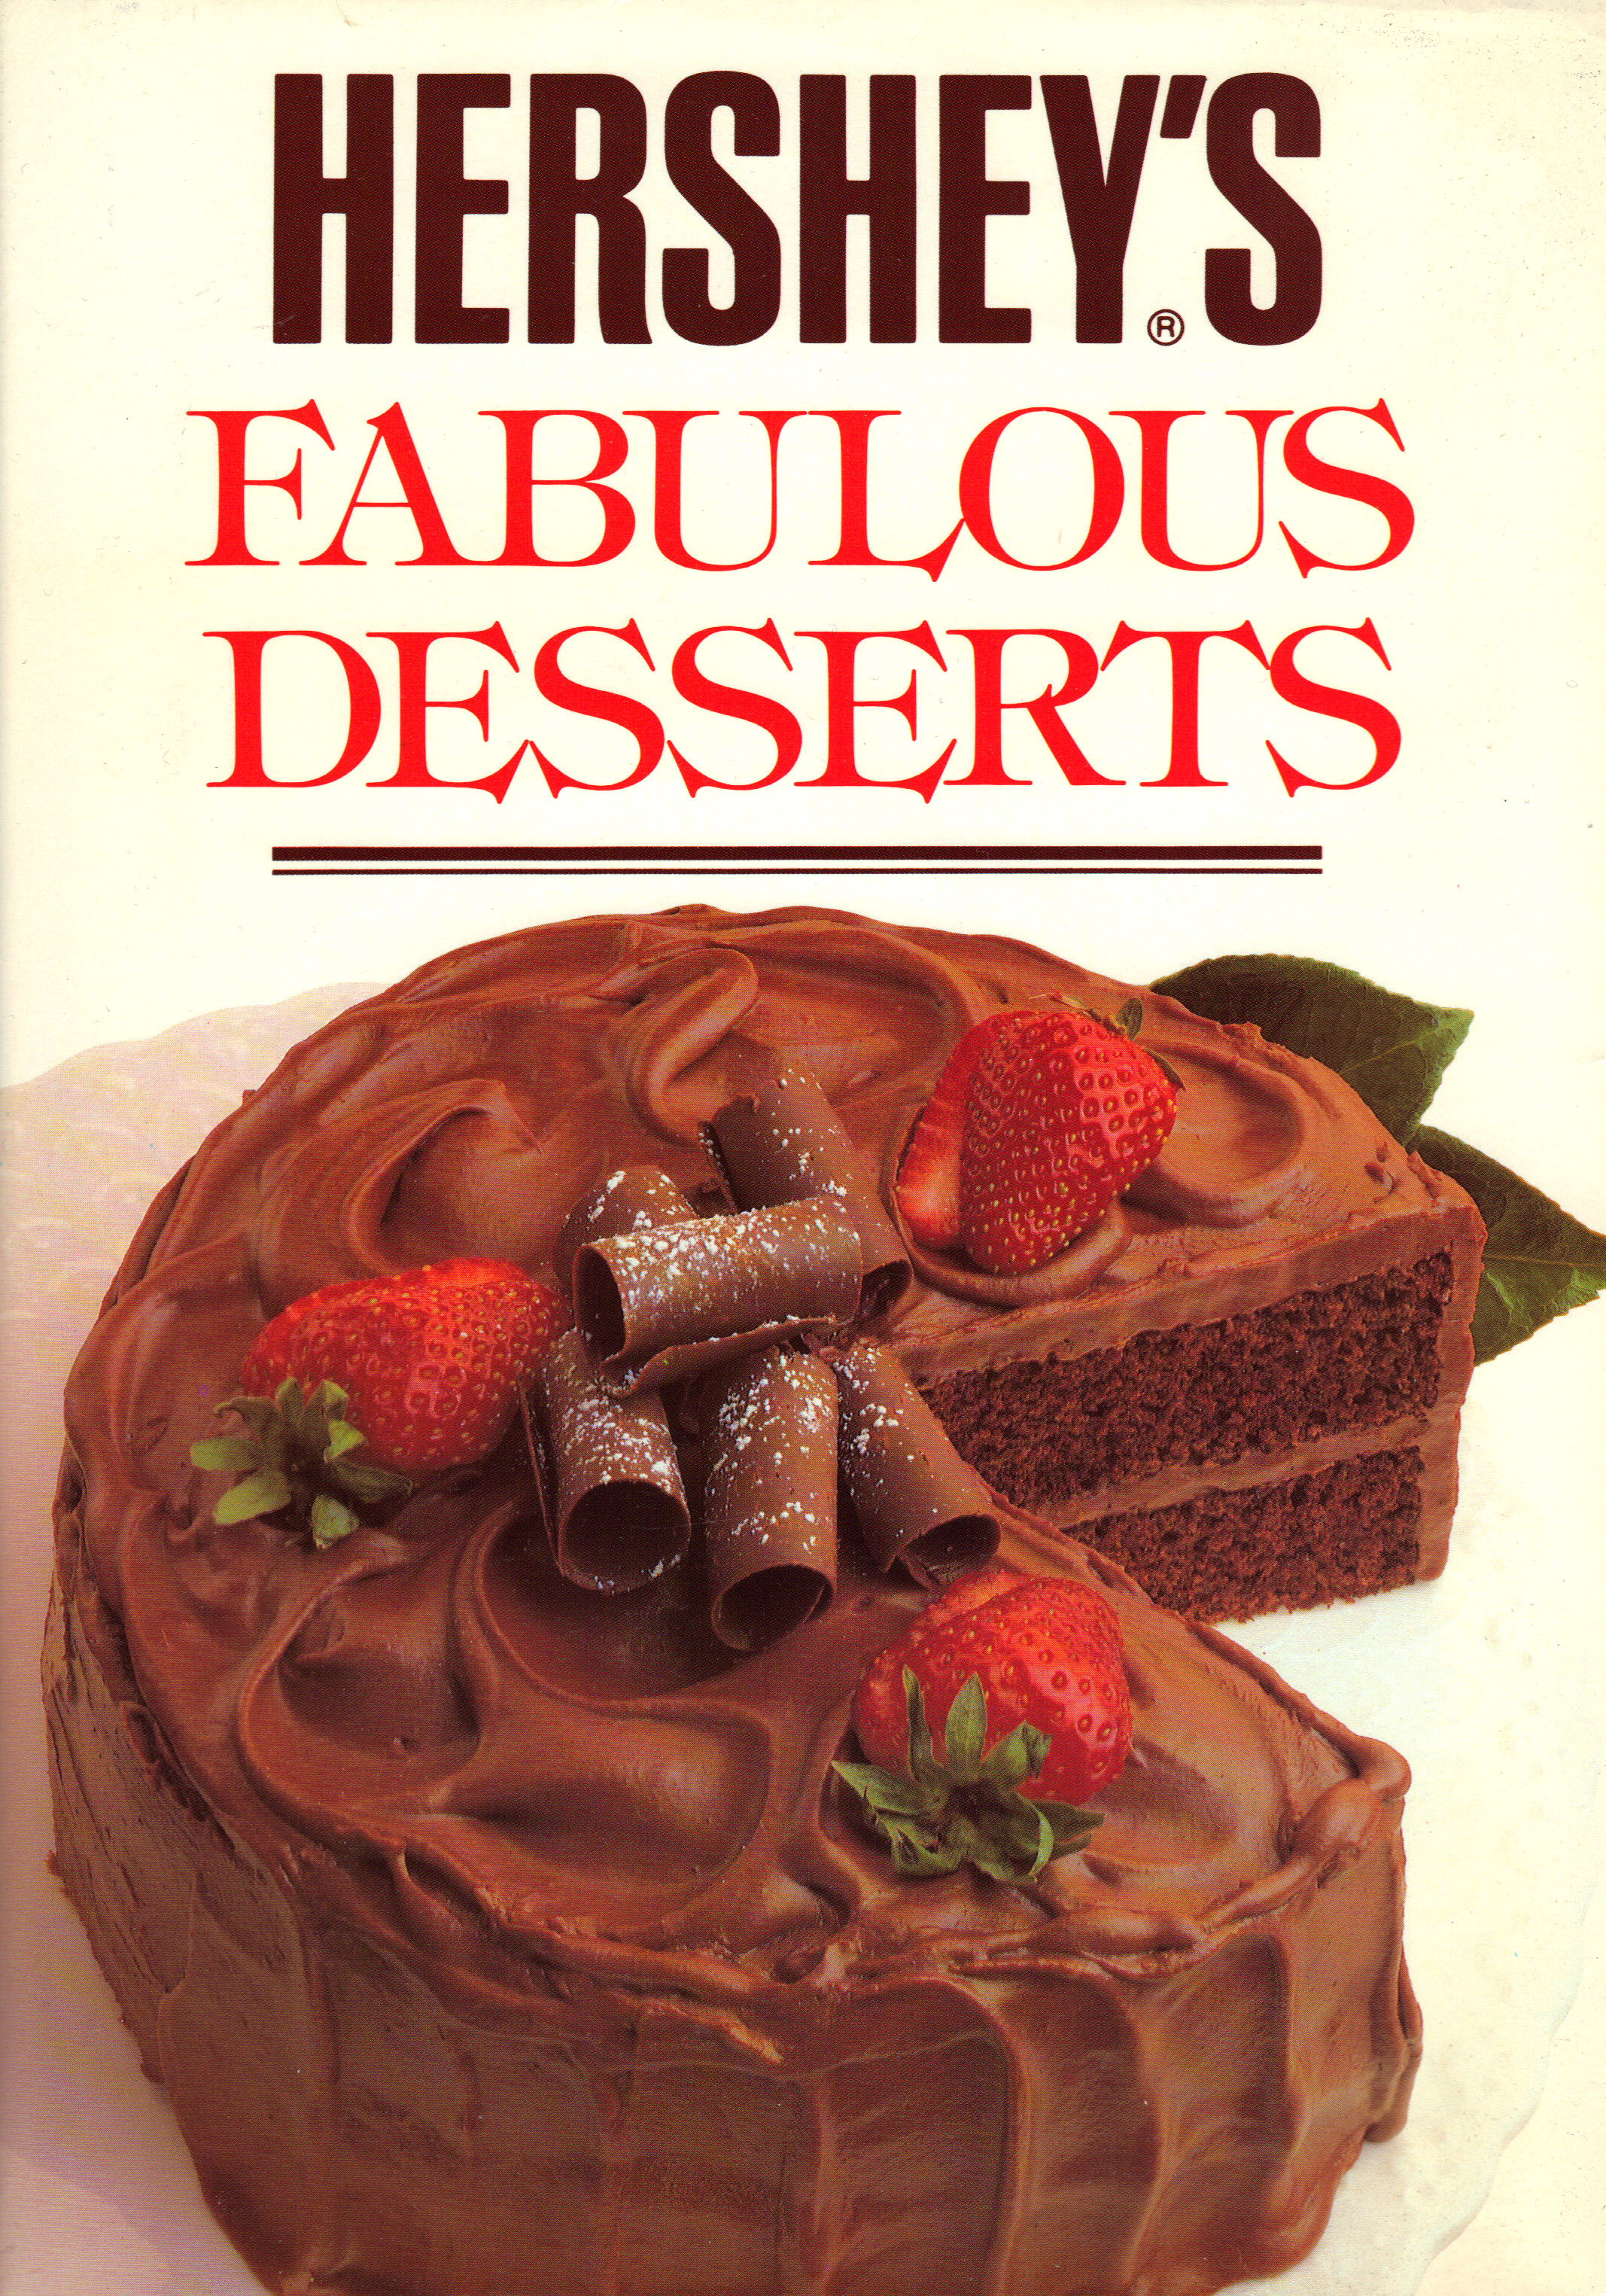 Image for HERSHEY'S FABULOUS DESSERTS